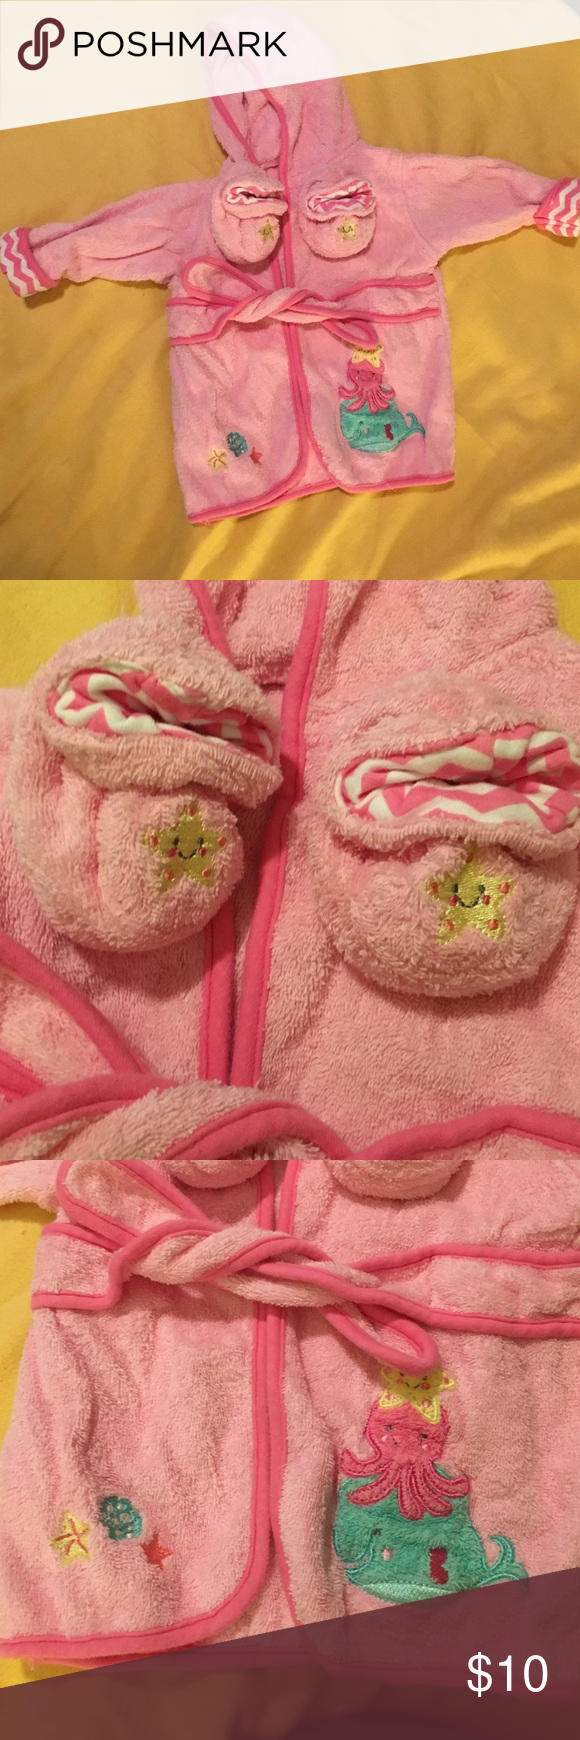 Pink hooded baby robe with matching slippers Used once. Very cute for shower gift or for a newborn after bath or a baby after swimming. Just Born Other